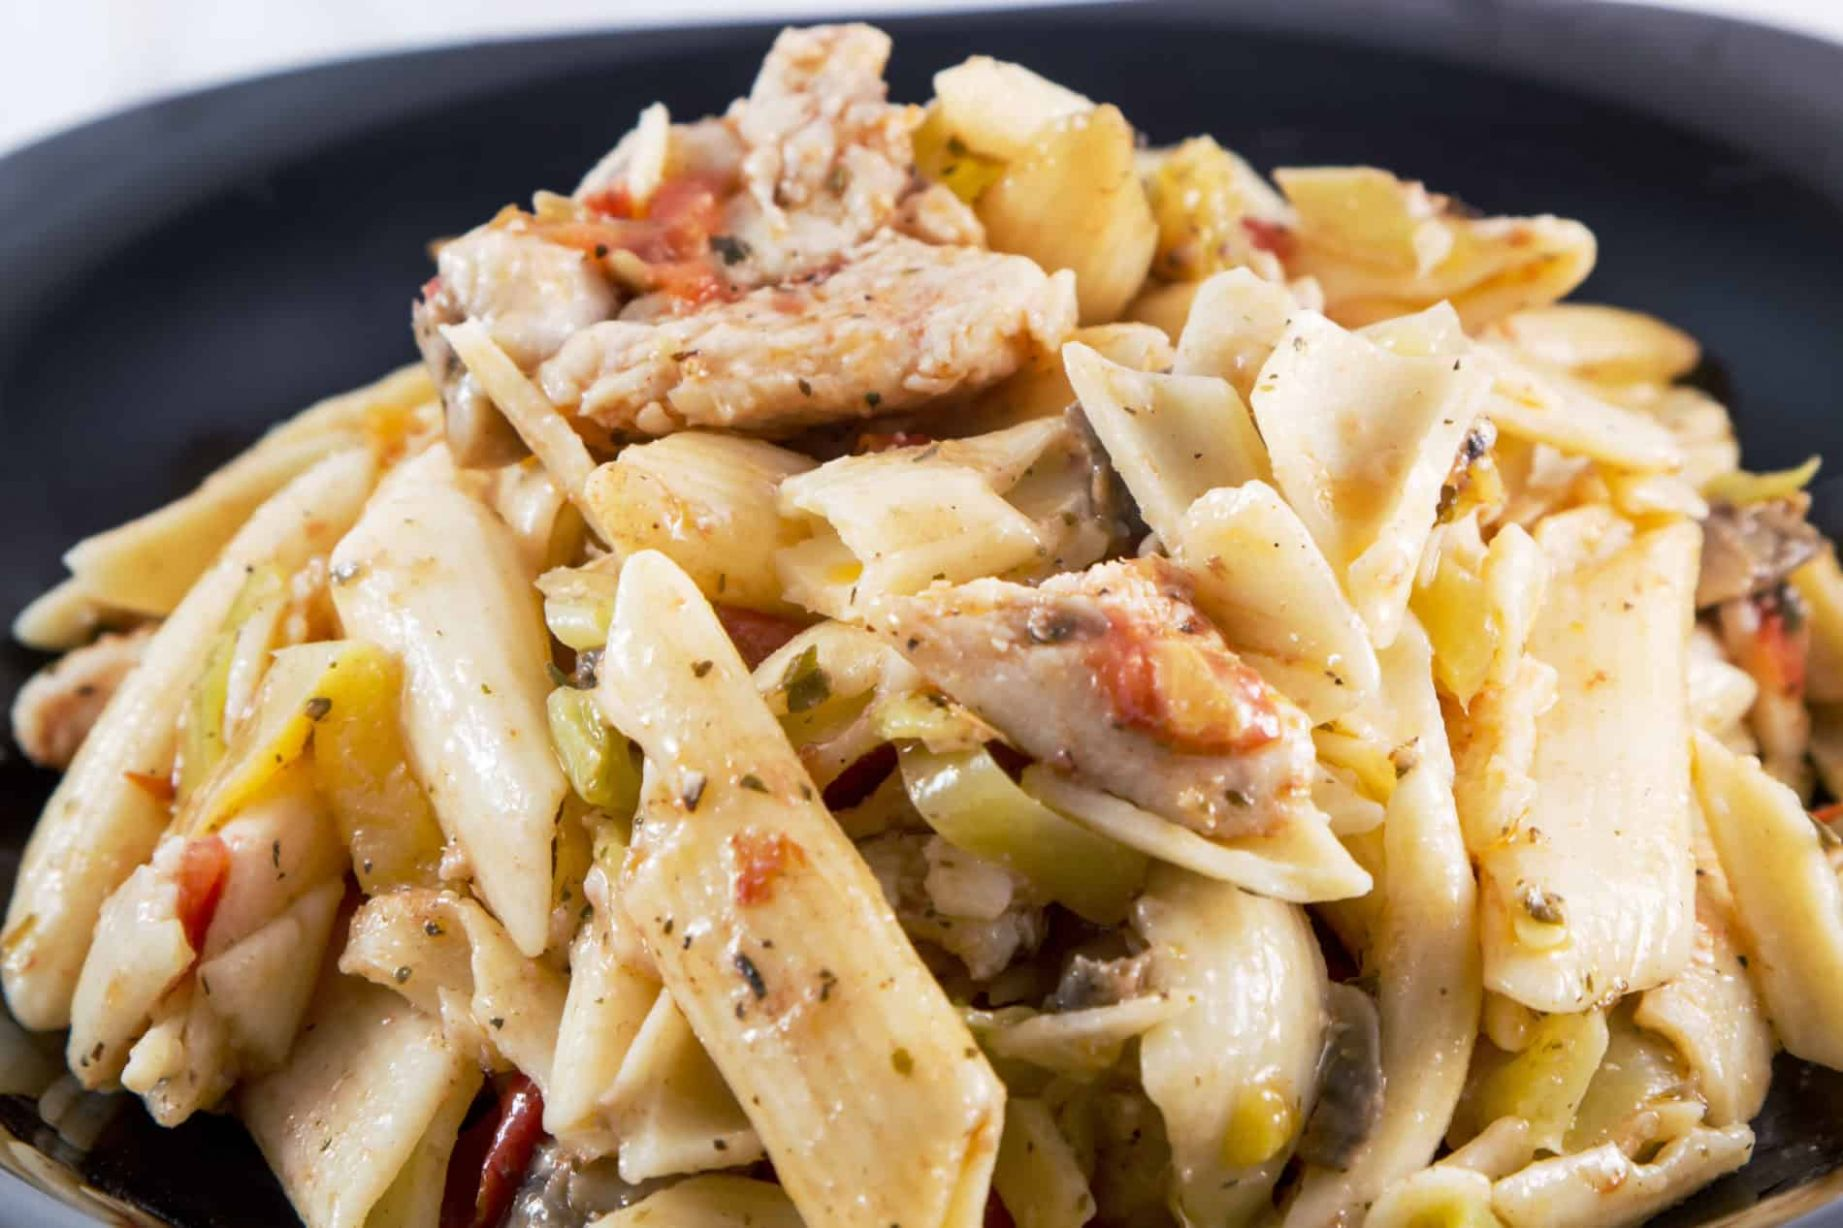 Smoked Chicken Salad With Penne Pasta